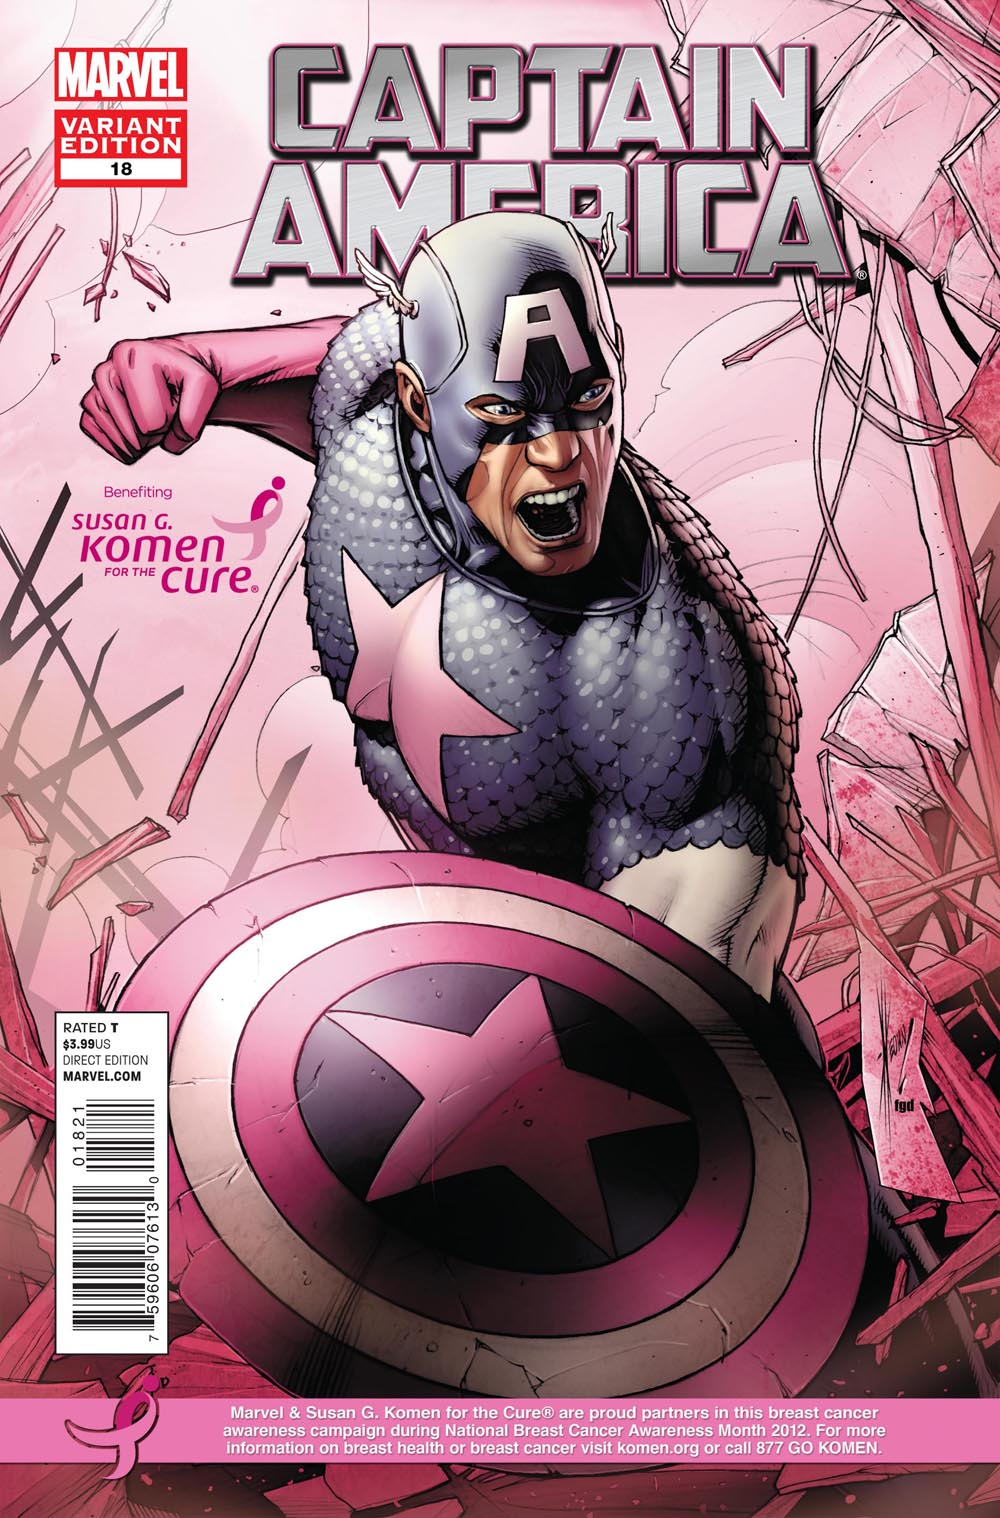 Marvel Comics and Korman for the cure comic book covers captainamerica_18_komen